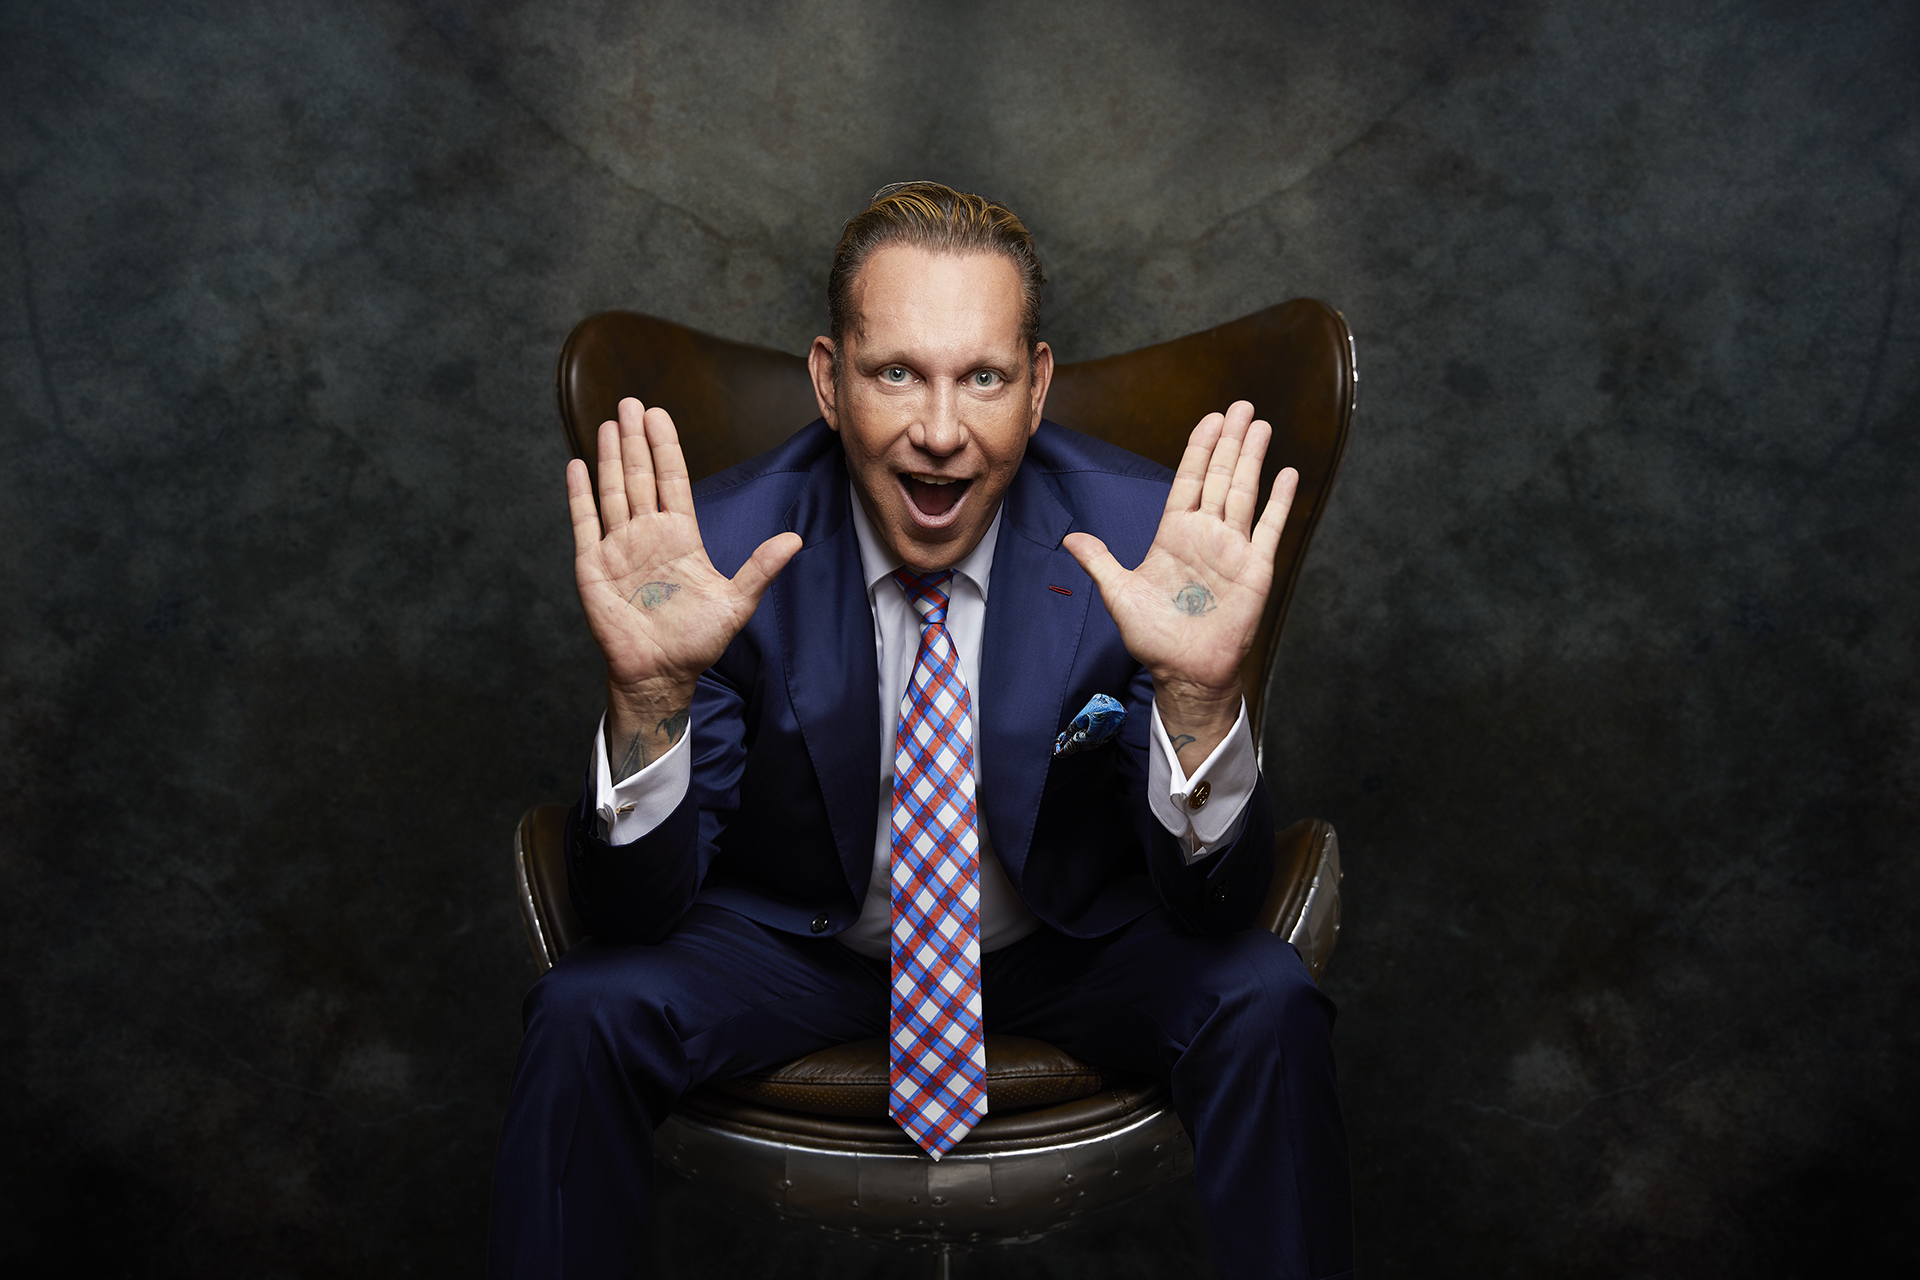 Studio 141 inc portfolio OCT Professionally Speaking magazine photography Michael Wekerle